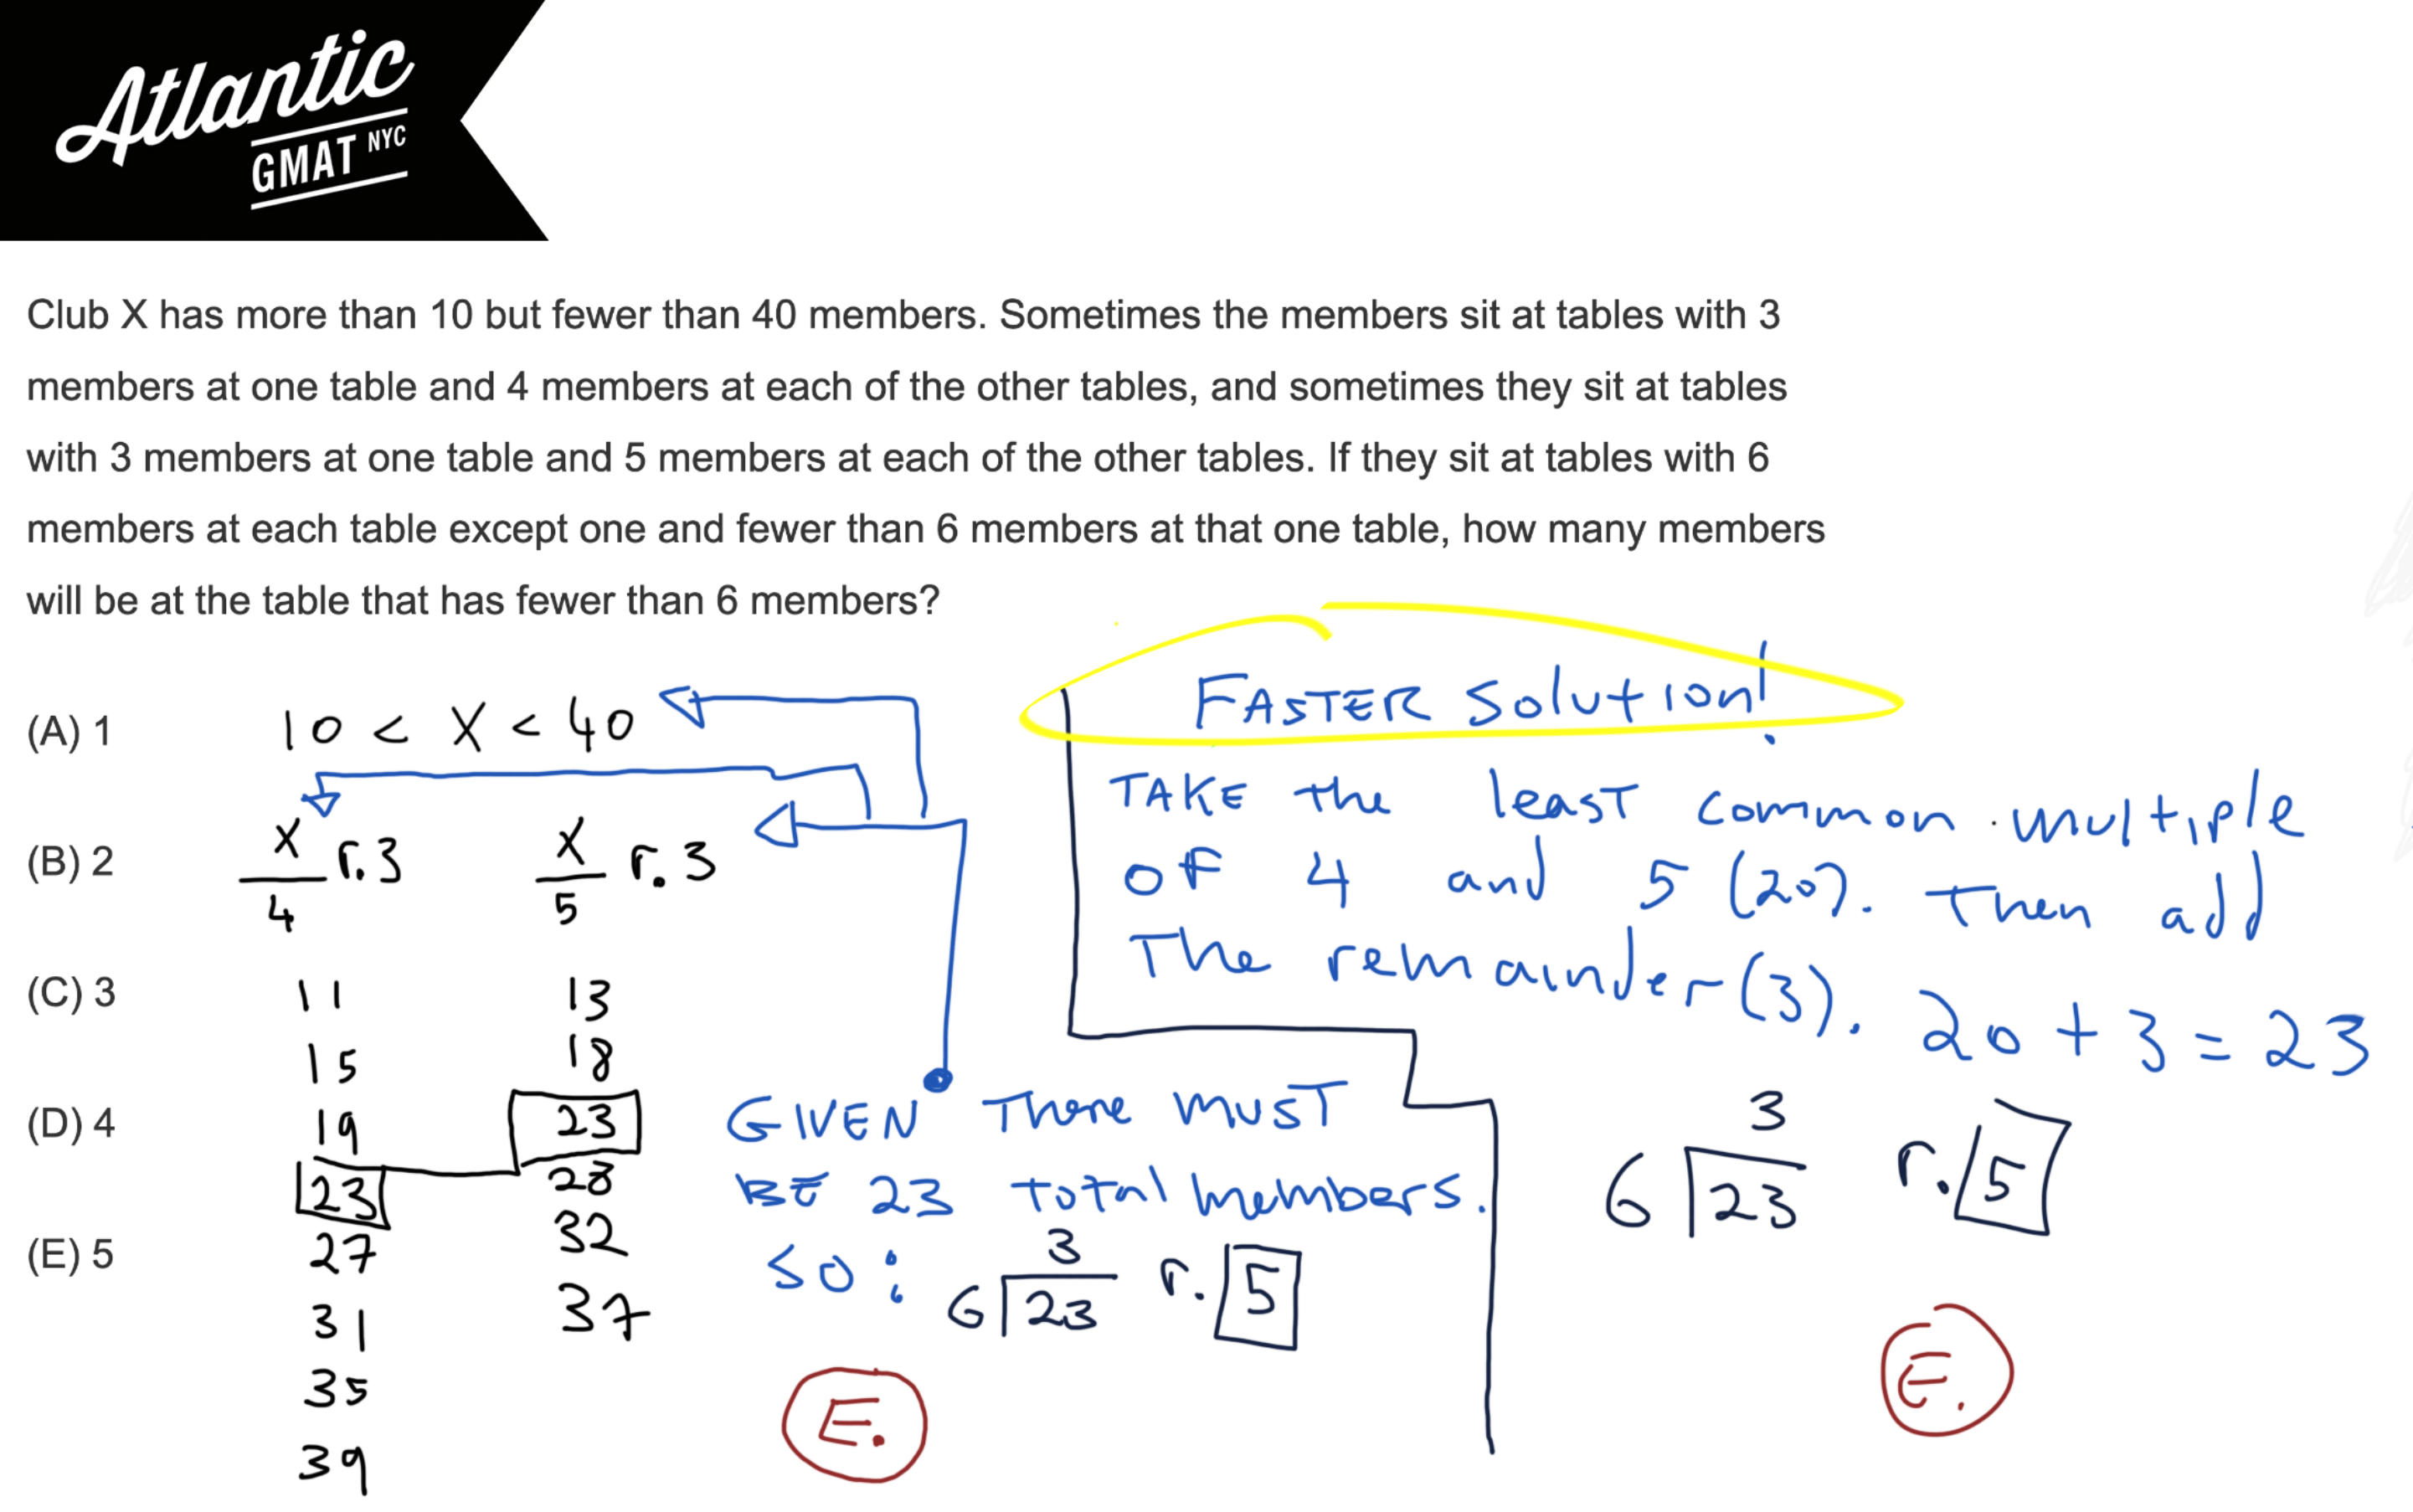 Club X has more than 10 but fewer than 40 members GMAT Explanation Diagram